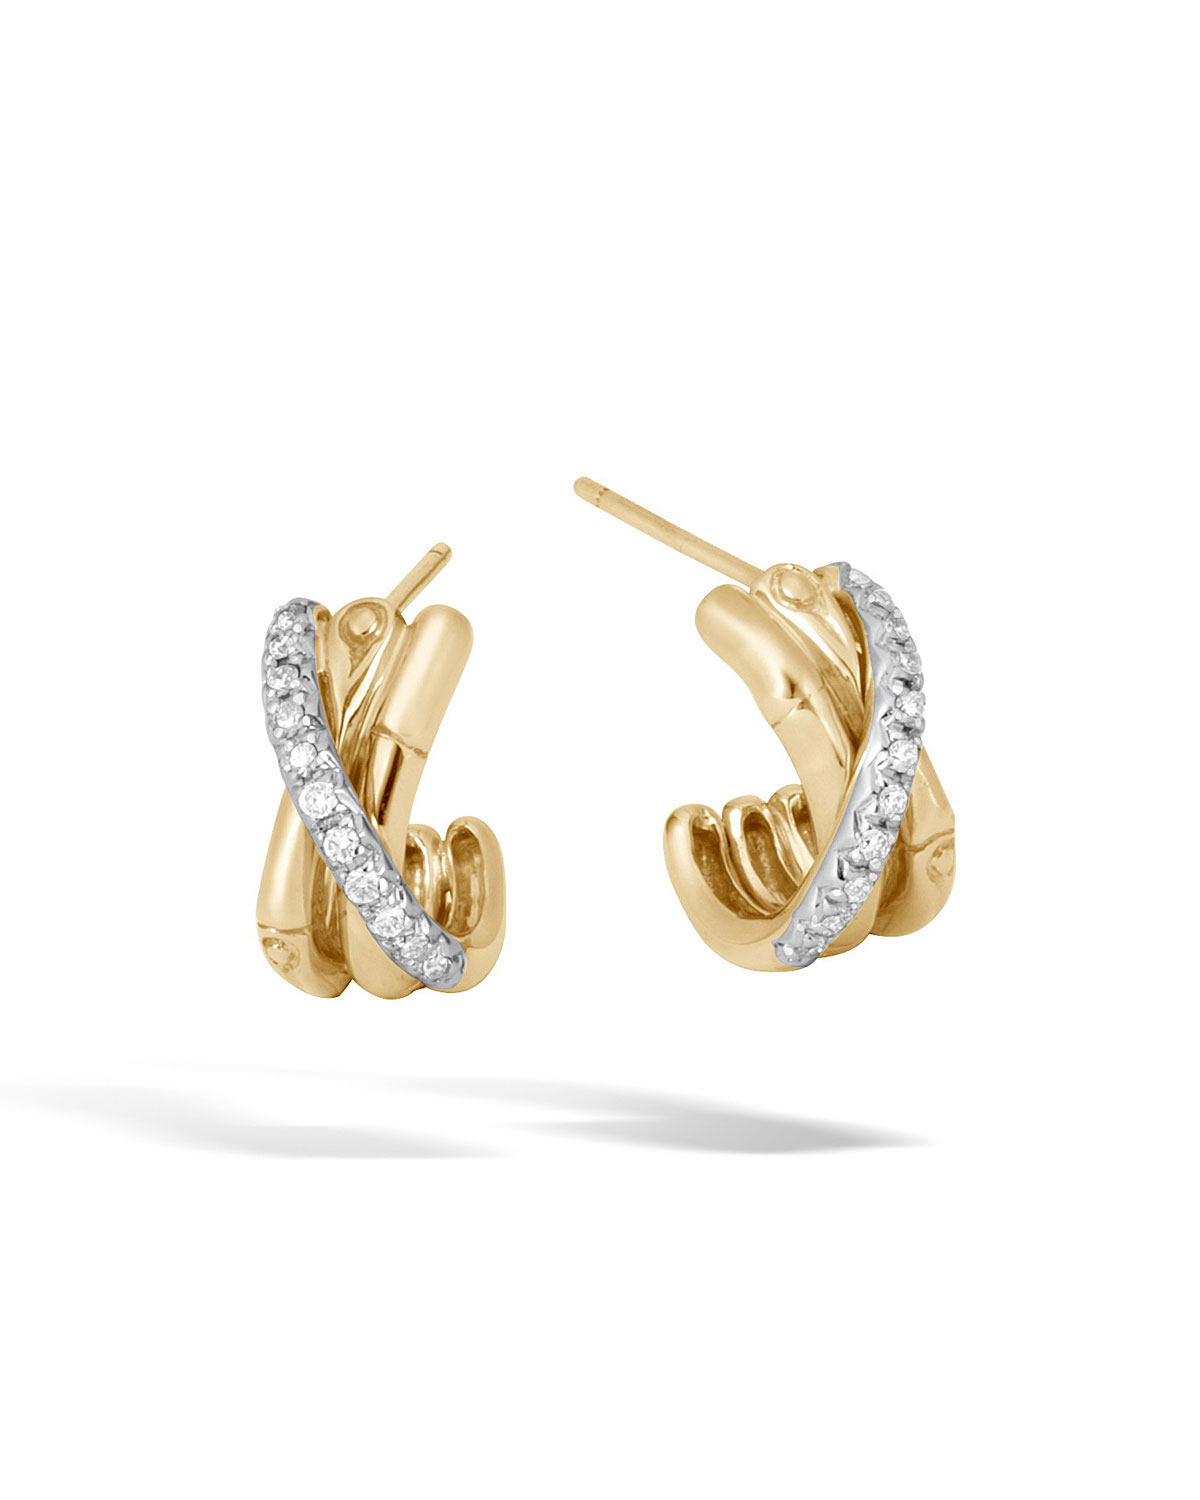 18K Yellow Gold Bamboo Pave Diamond J Hoop Earrings in Gold/ Diamond